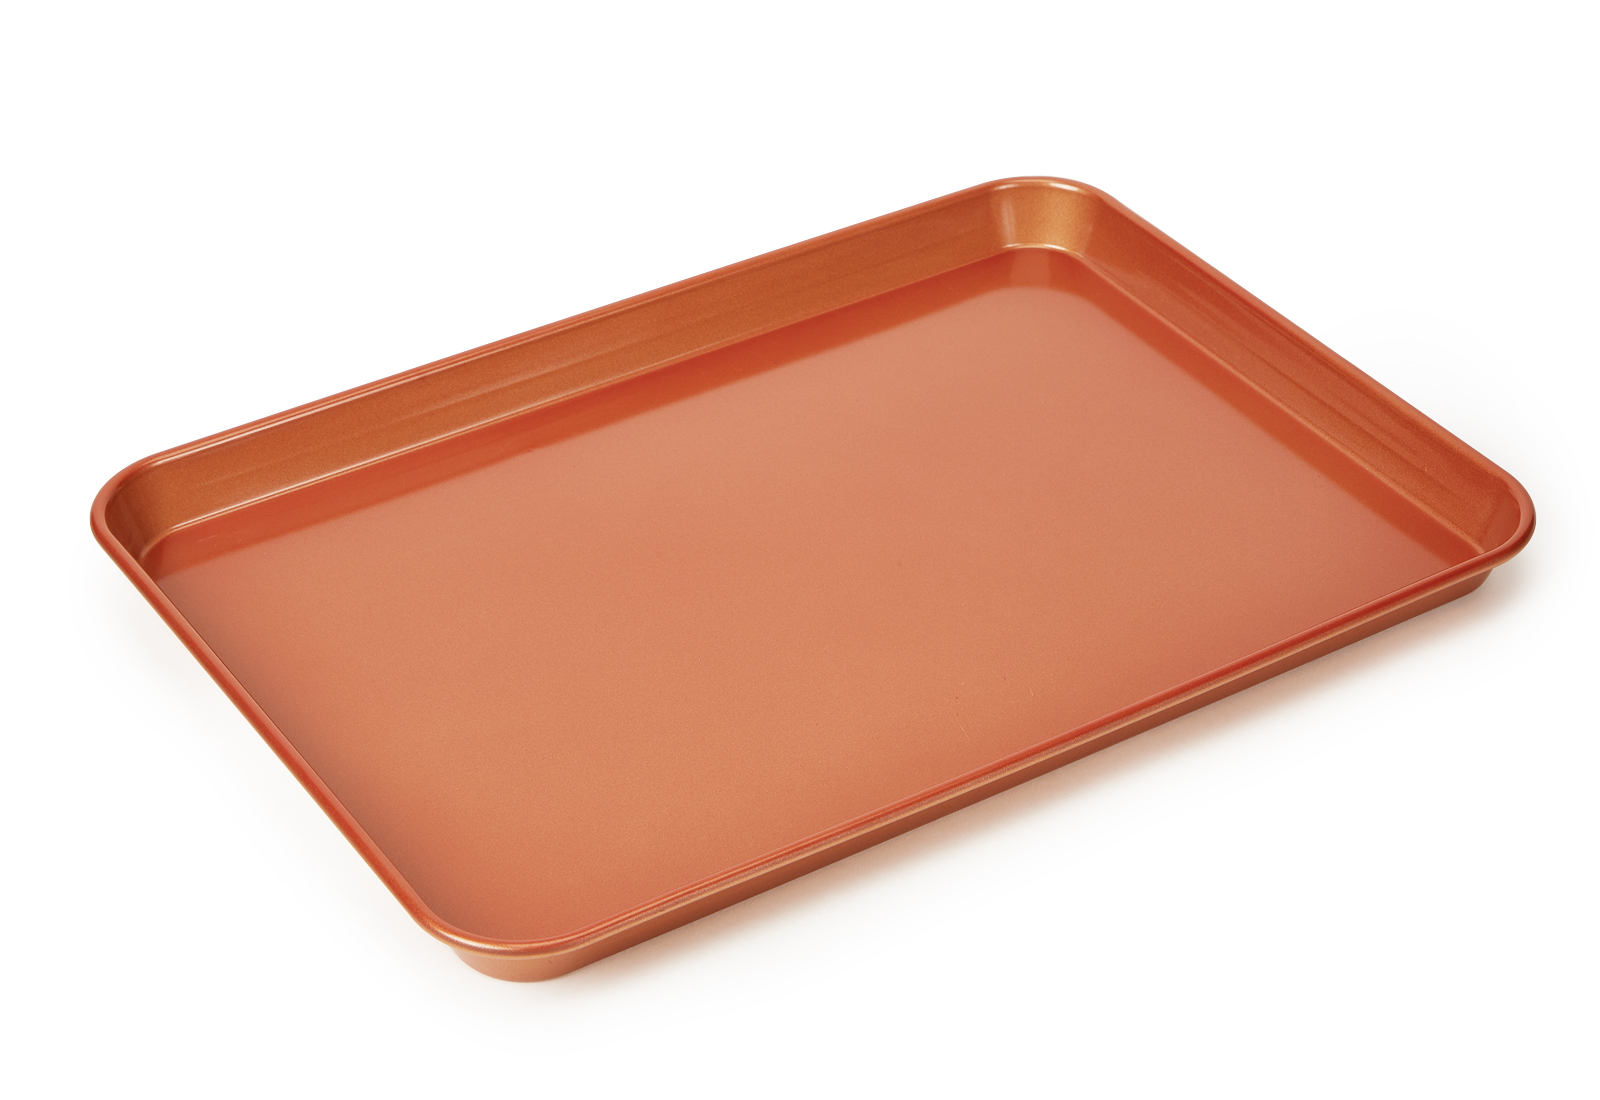 Copper Chef Cookie Sheet Product Image